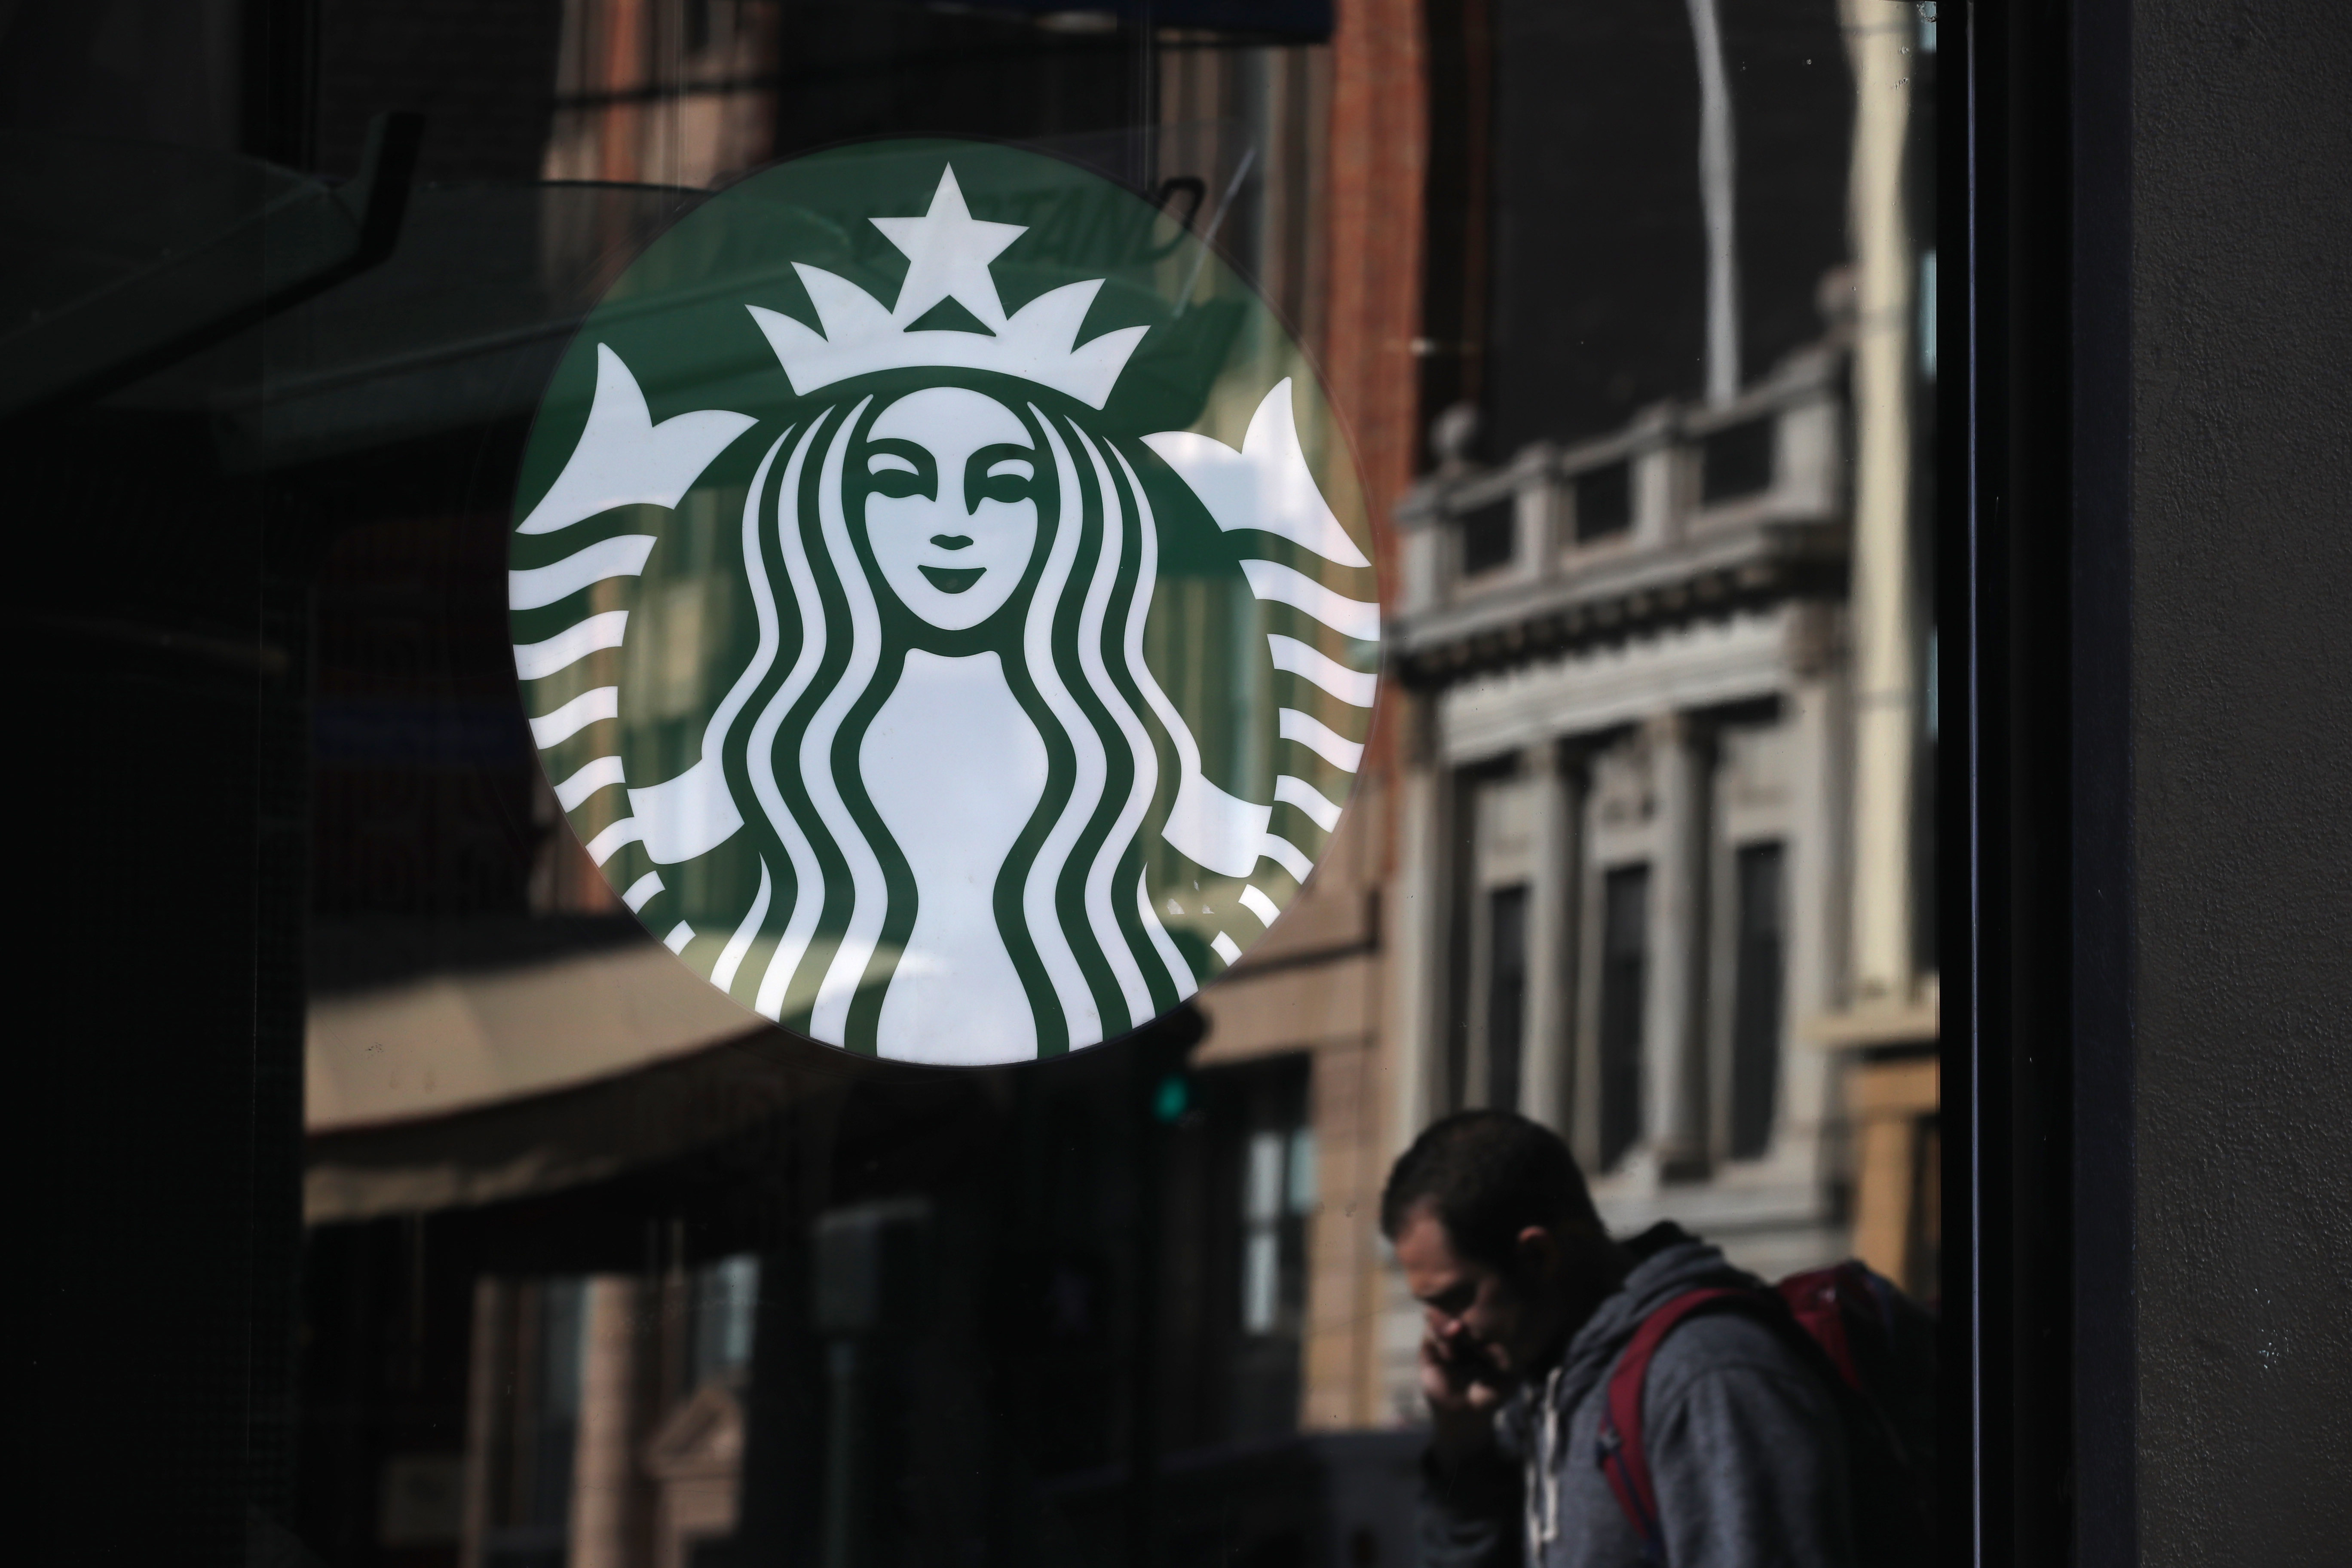 Manhattan Starbucks Accused of Using Toxic Pesticides Near Food in New Lawsuit